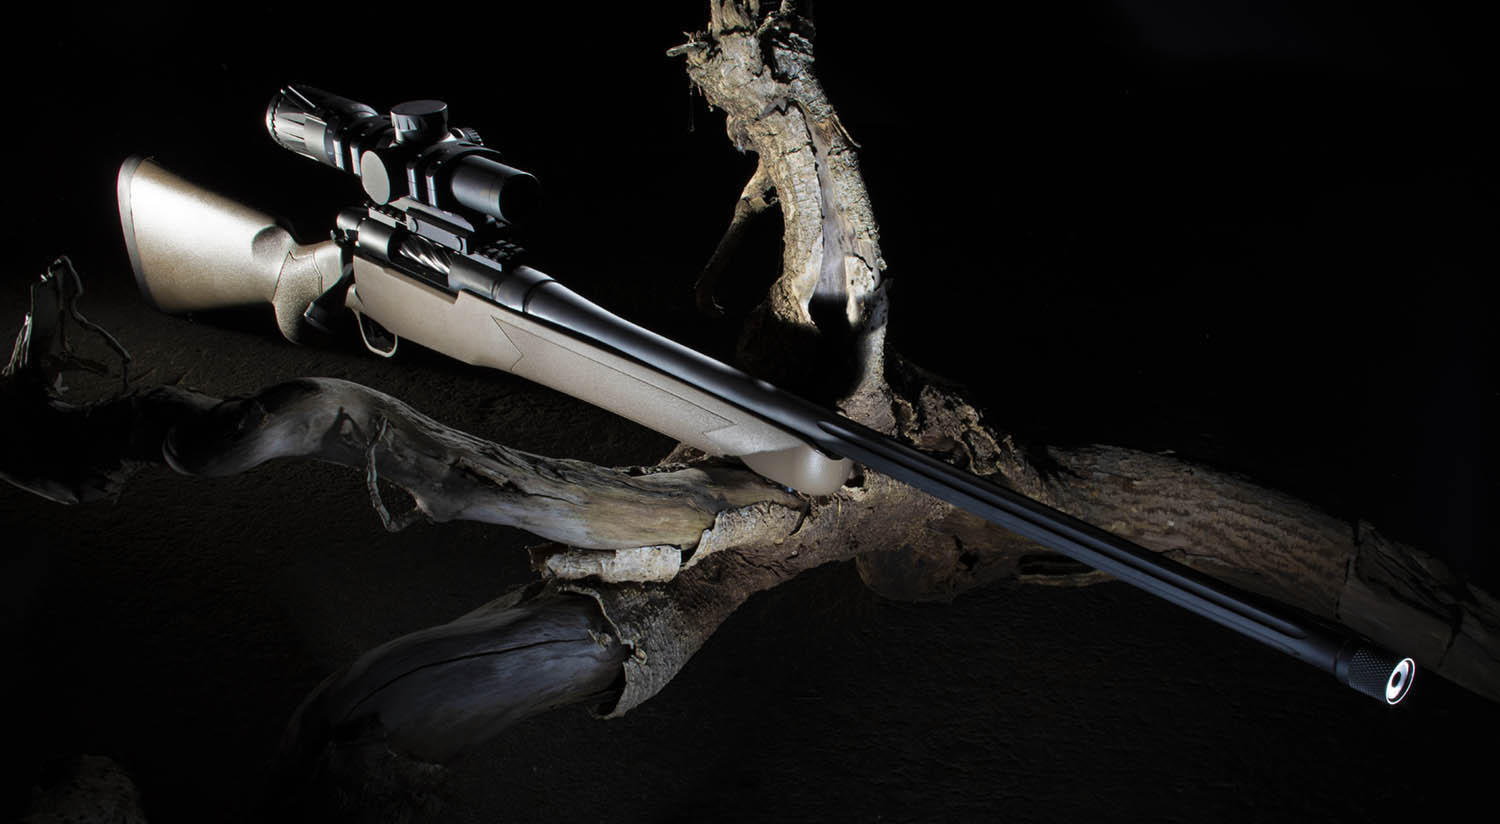 Hunting rifle and scope in low light steadied across a log.